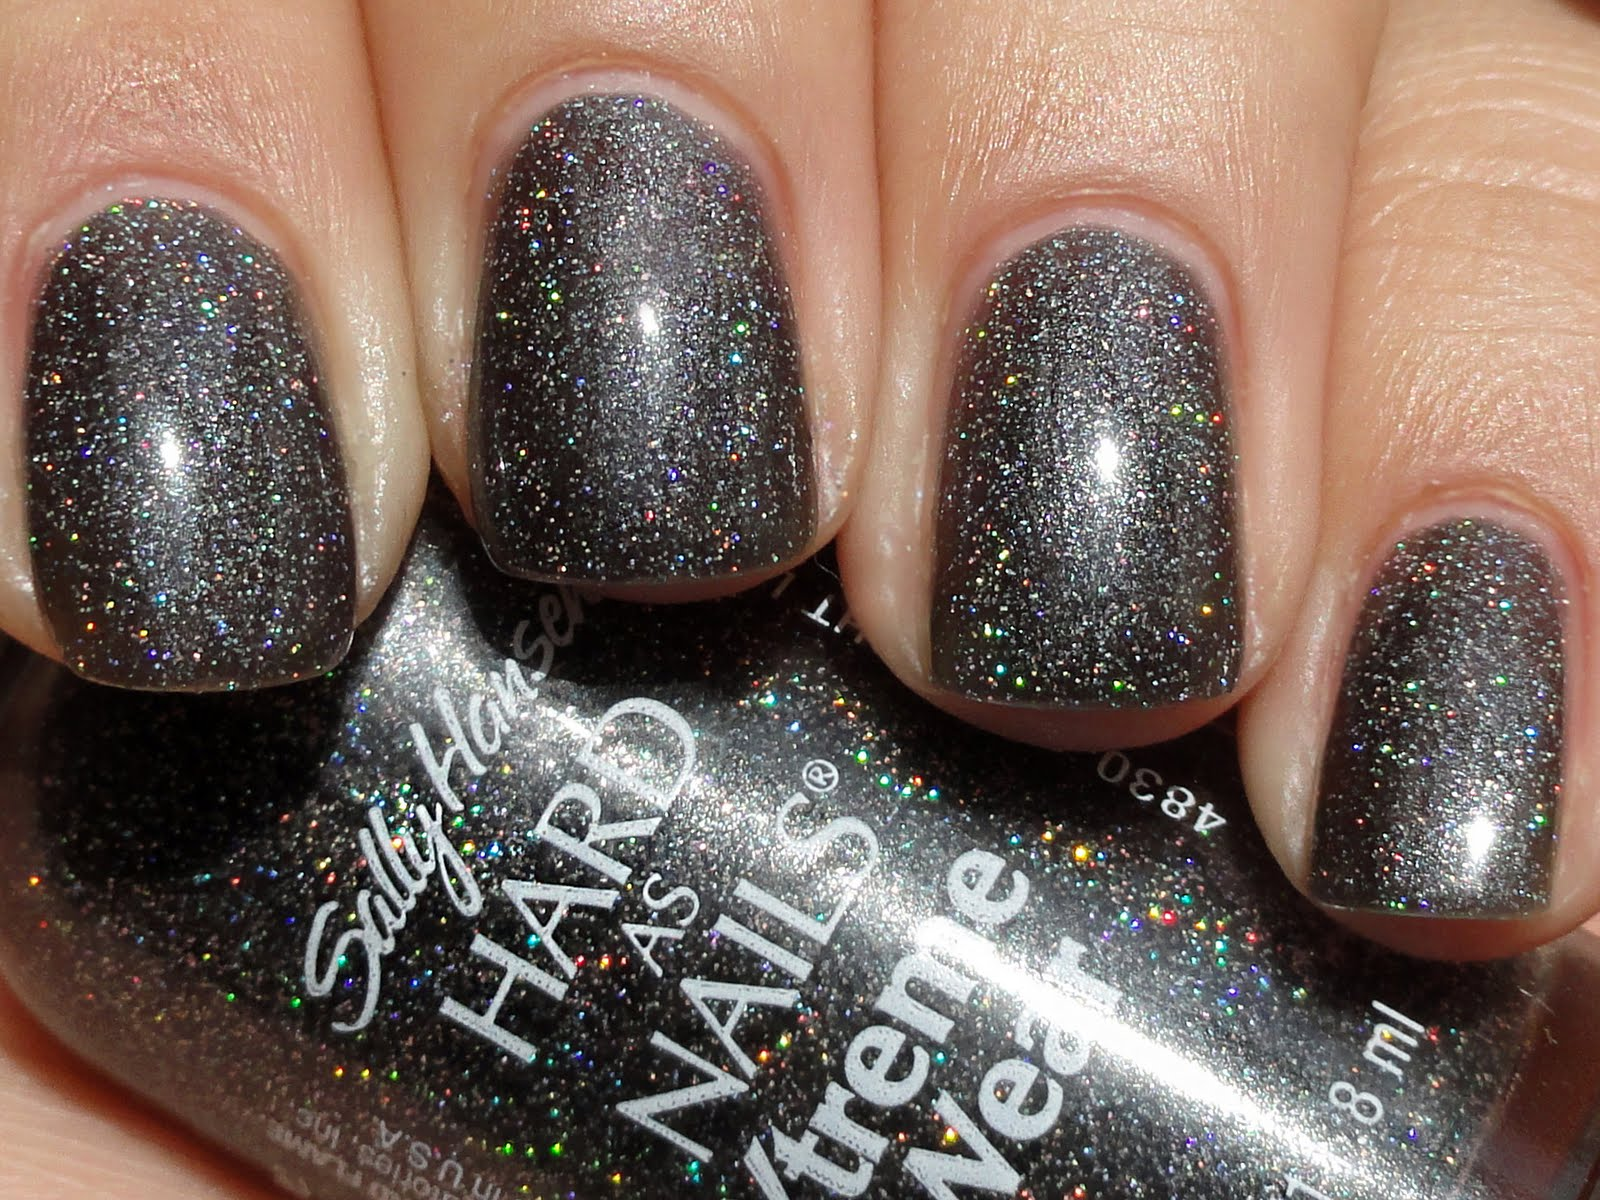 KellieGonzo: Sally Hansen Night Lights